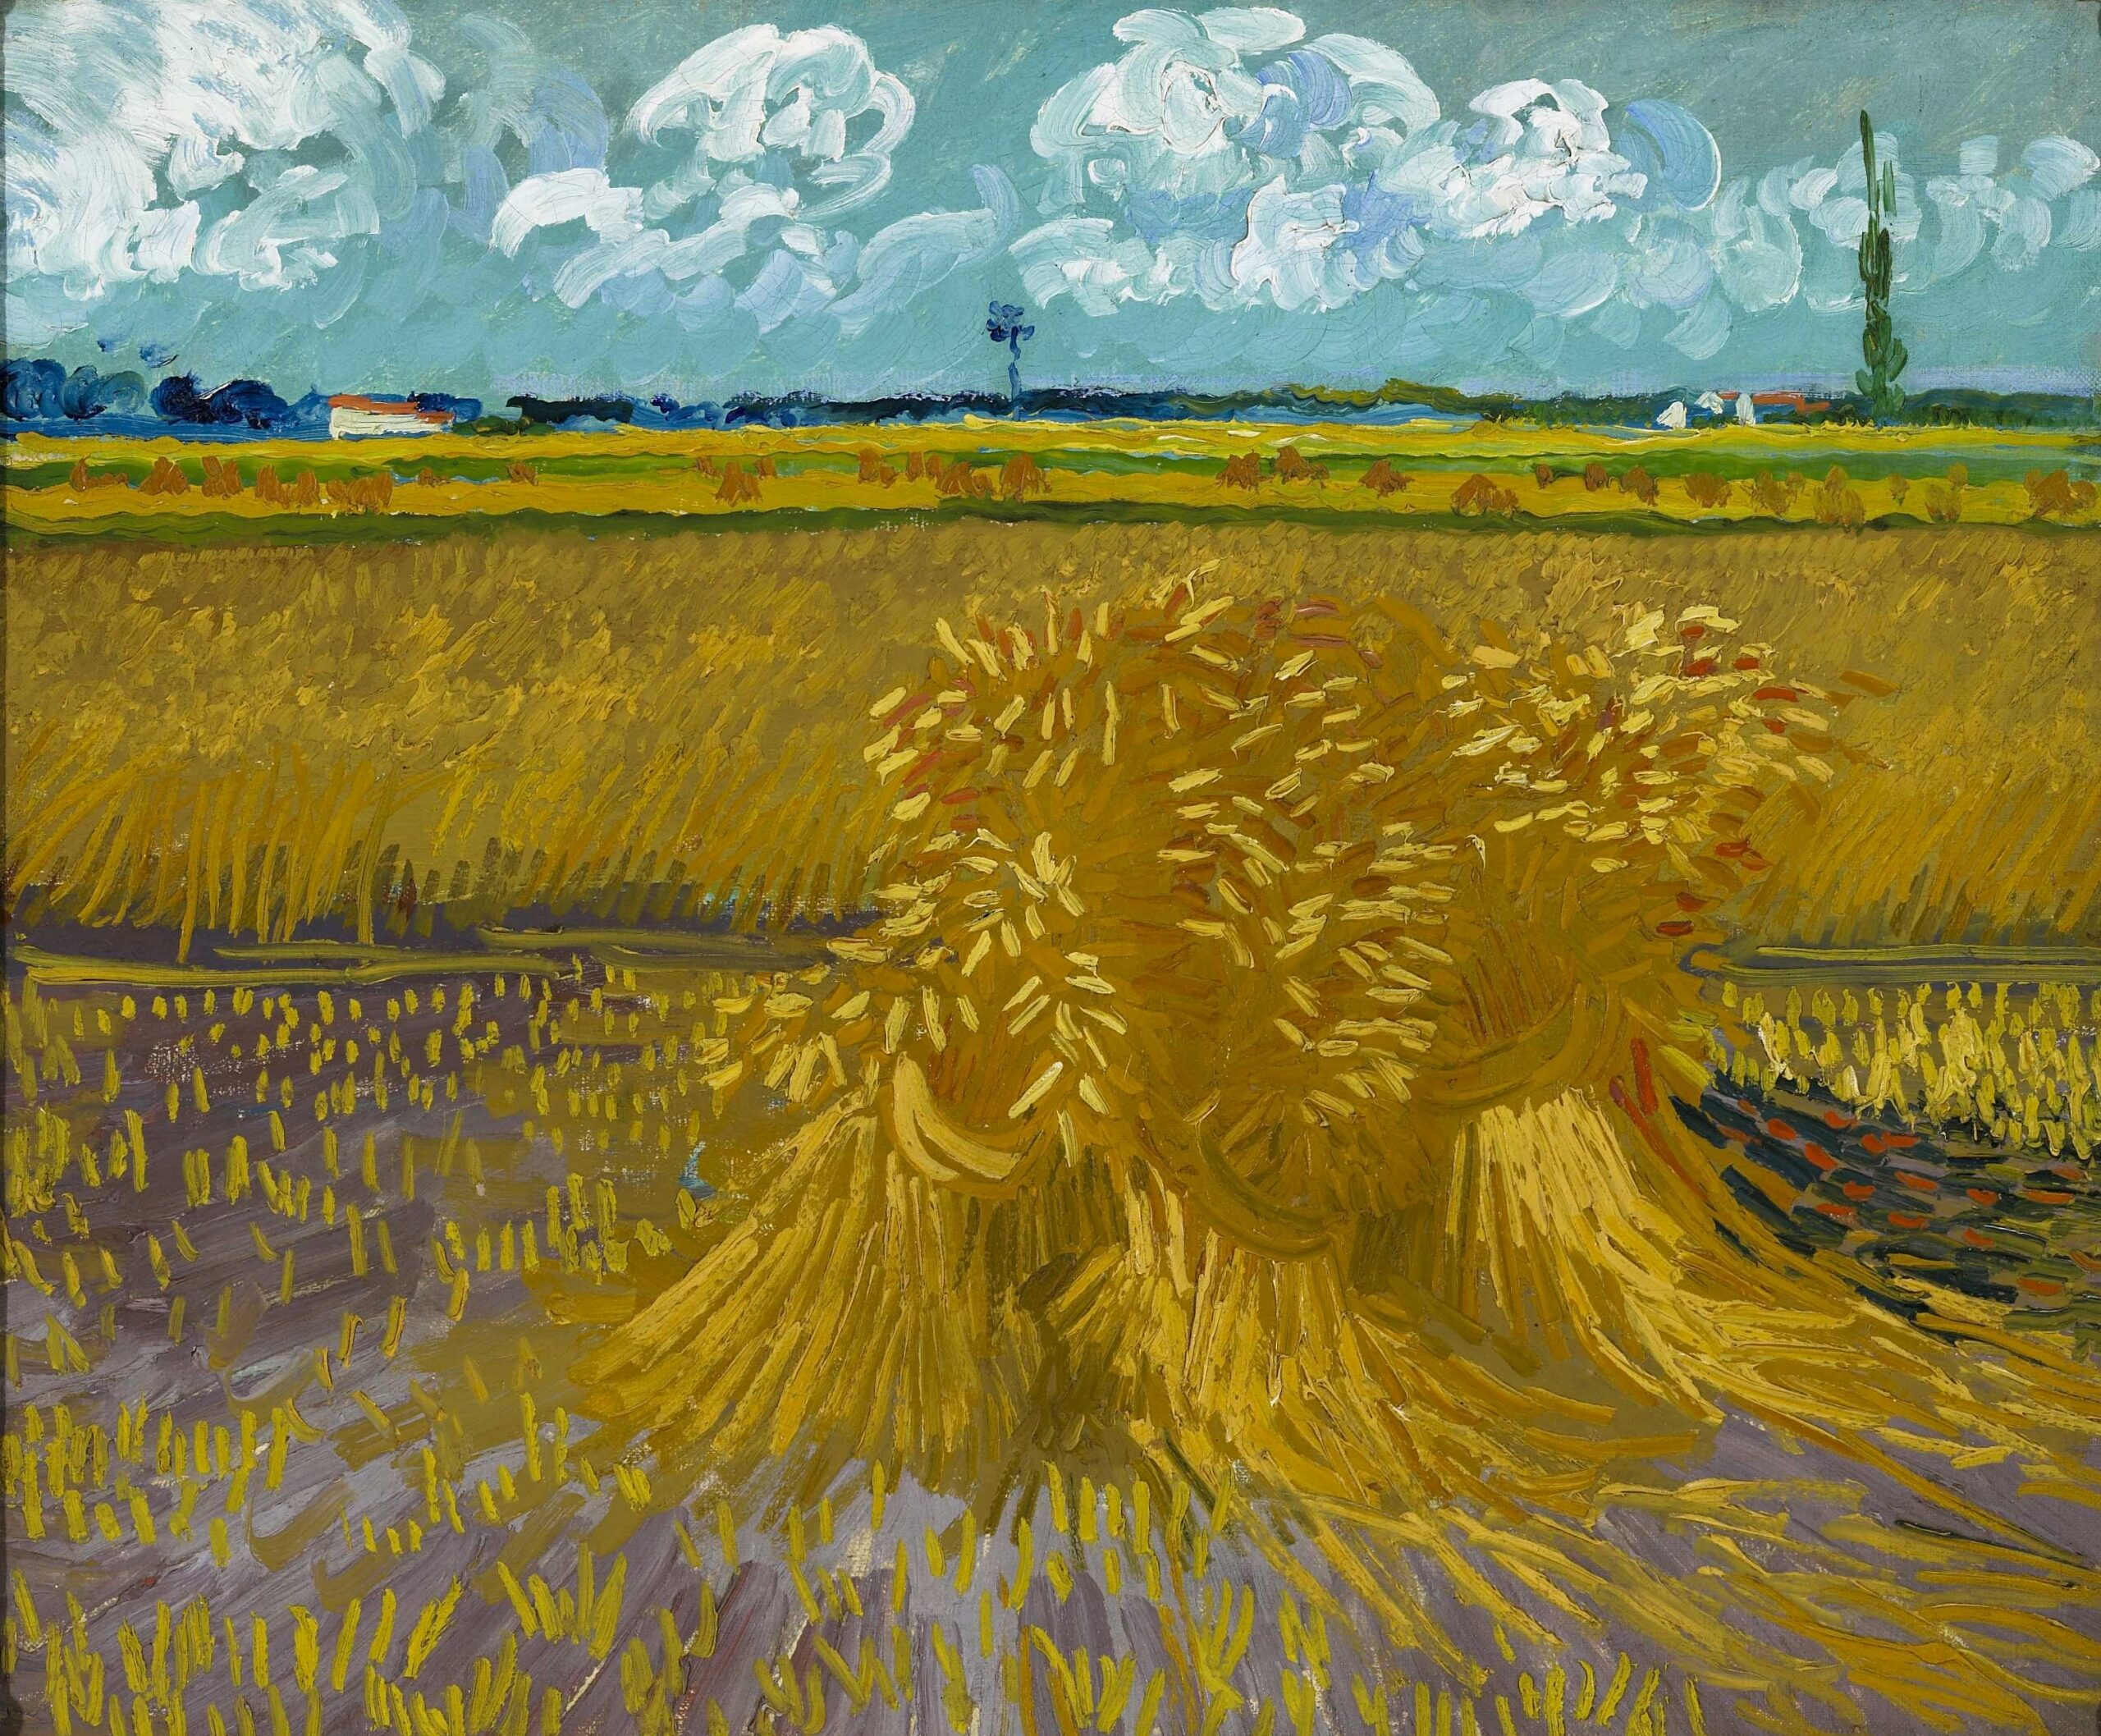 Vincent van Gogh (Dutch, 1853–1890), The Wheatfield, 1888. Oil on canvas, 21 3⁄4 × 26 1⁄4 in. Honolulu Museum of Art, Gift of Mrs. Richard A. Cooke and Family in memory of Richard A. Cooke, 1946, 377.1.